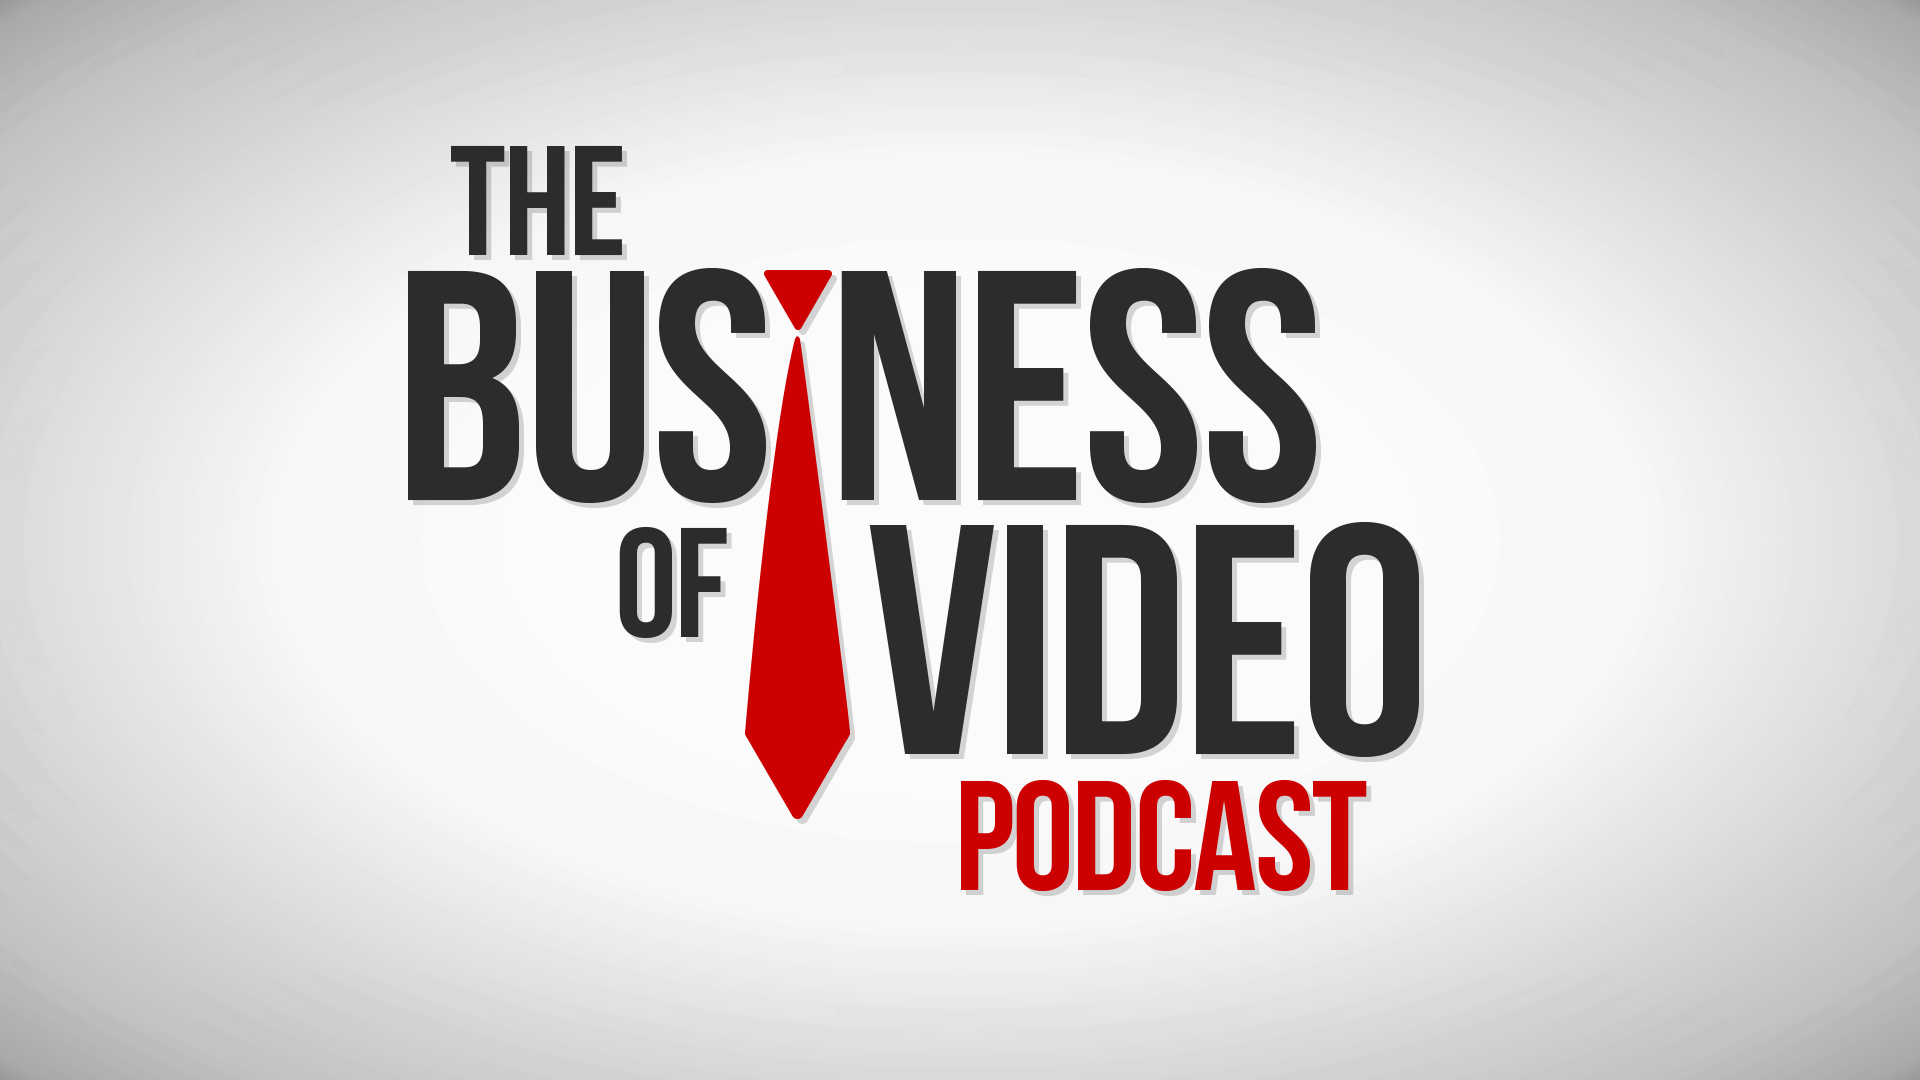 Check out this amazing podcast!